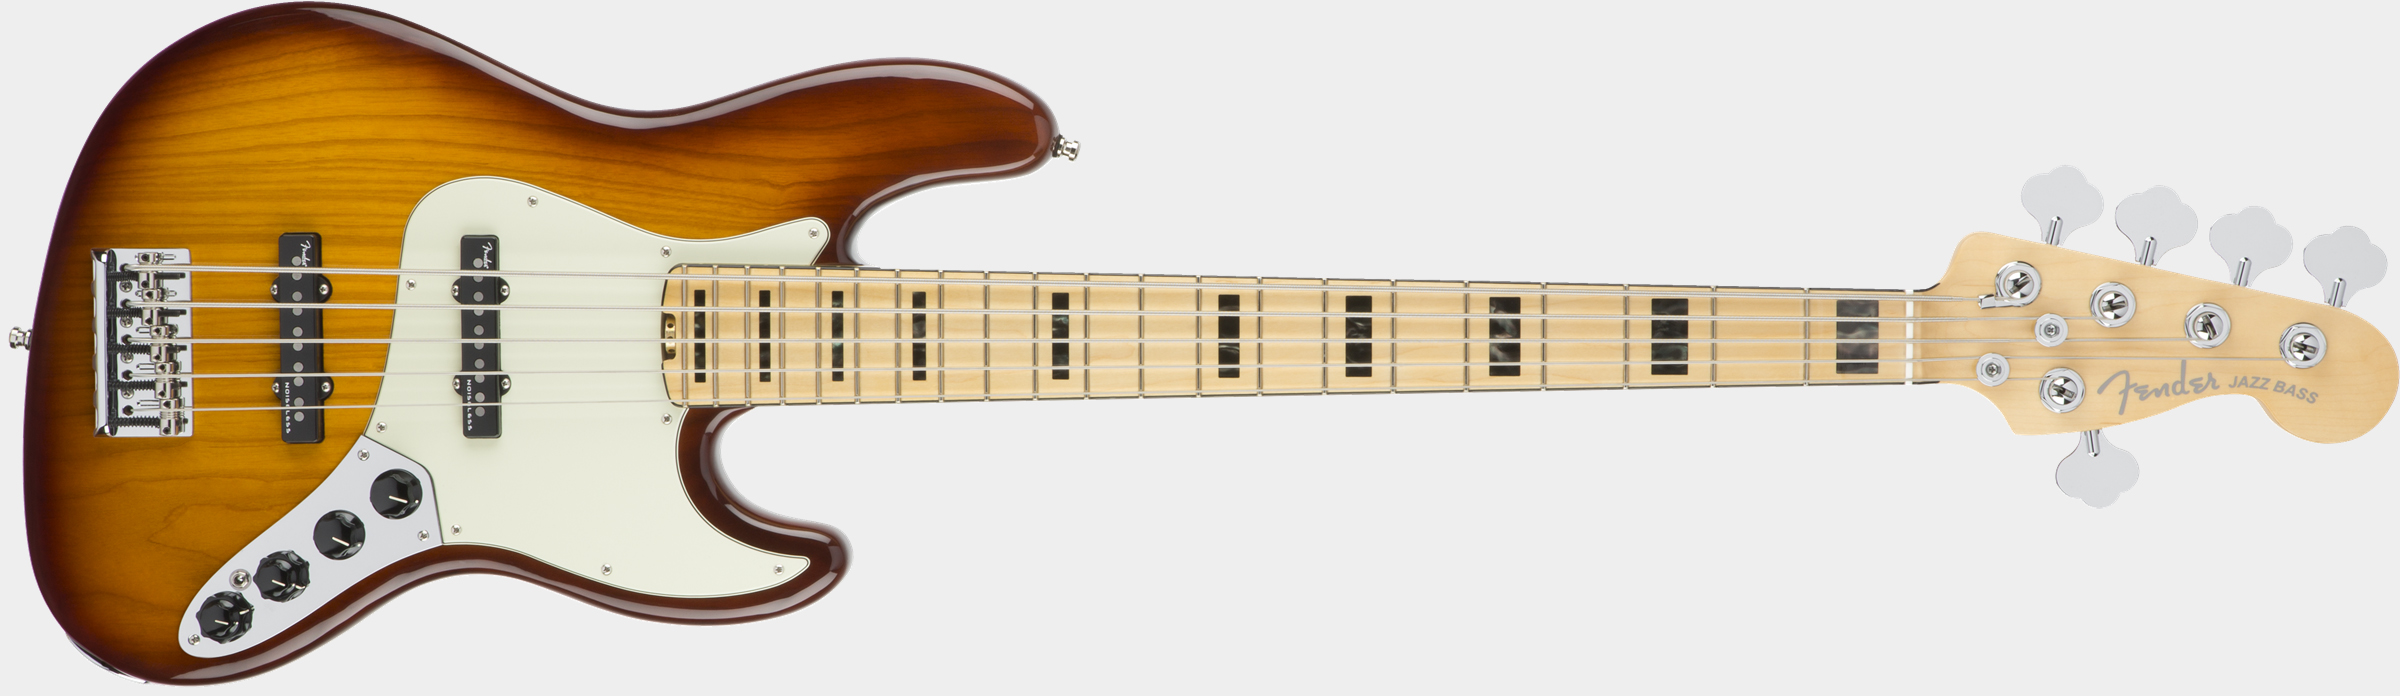 FENDER American Elite Jazz Bass V Tobacco Sunburst